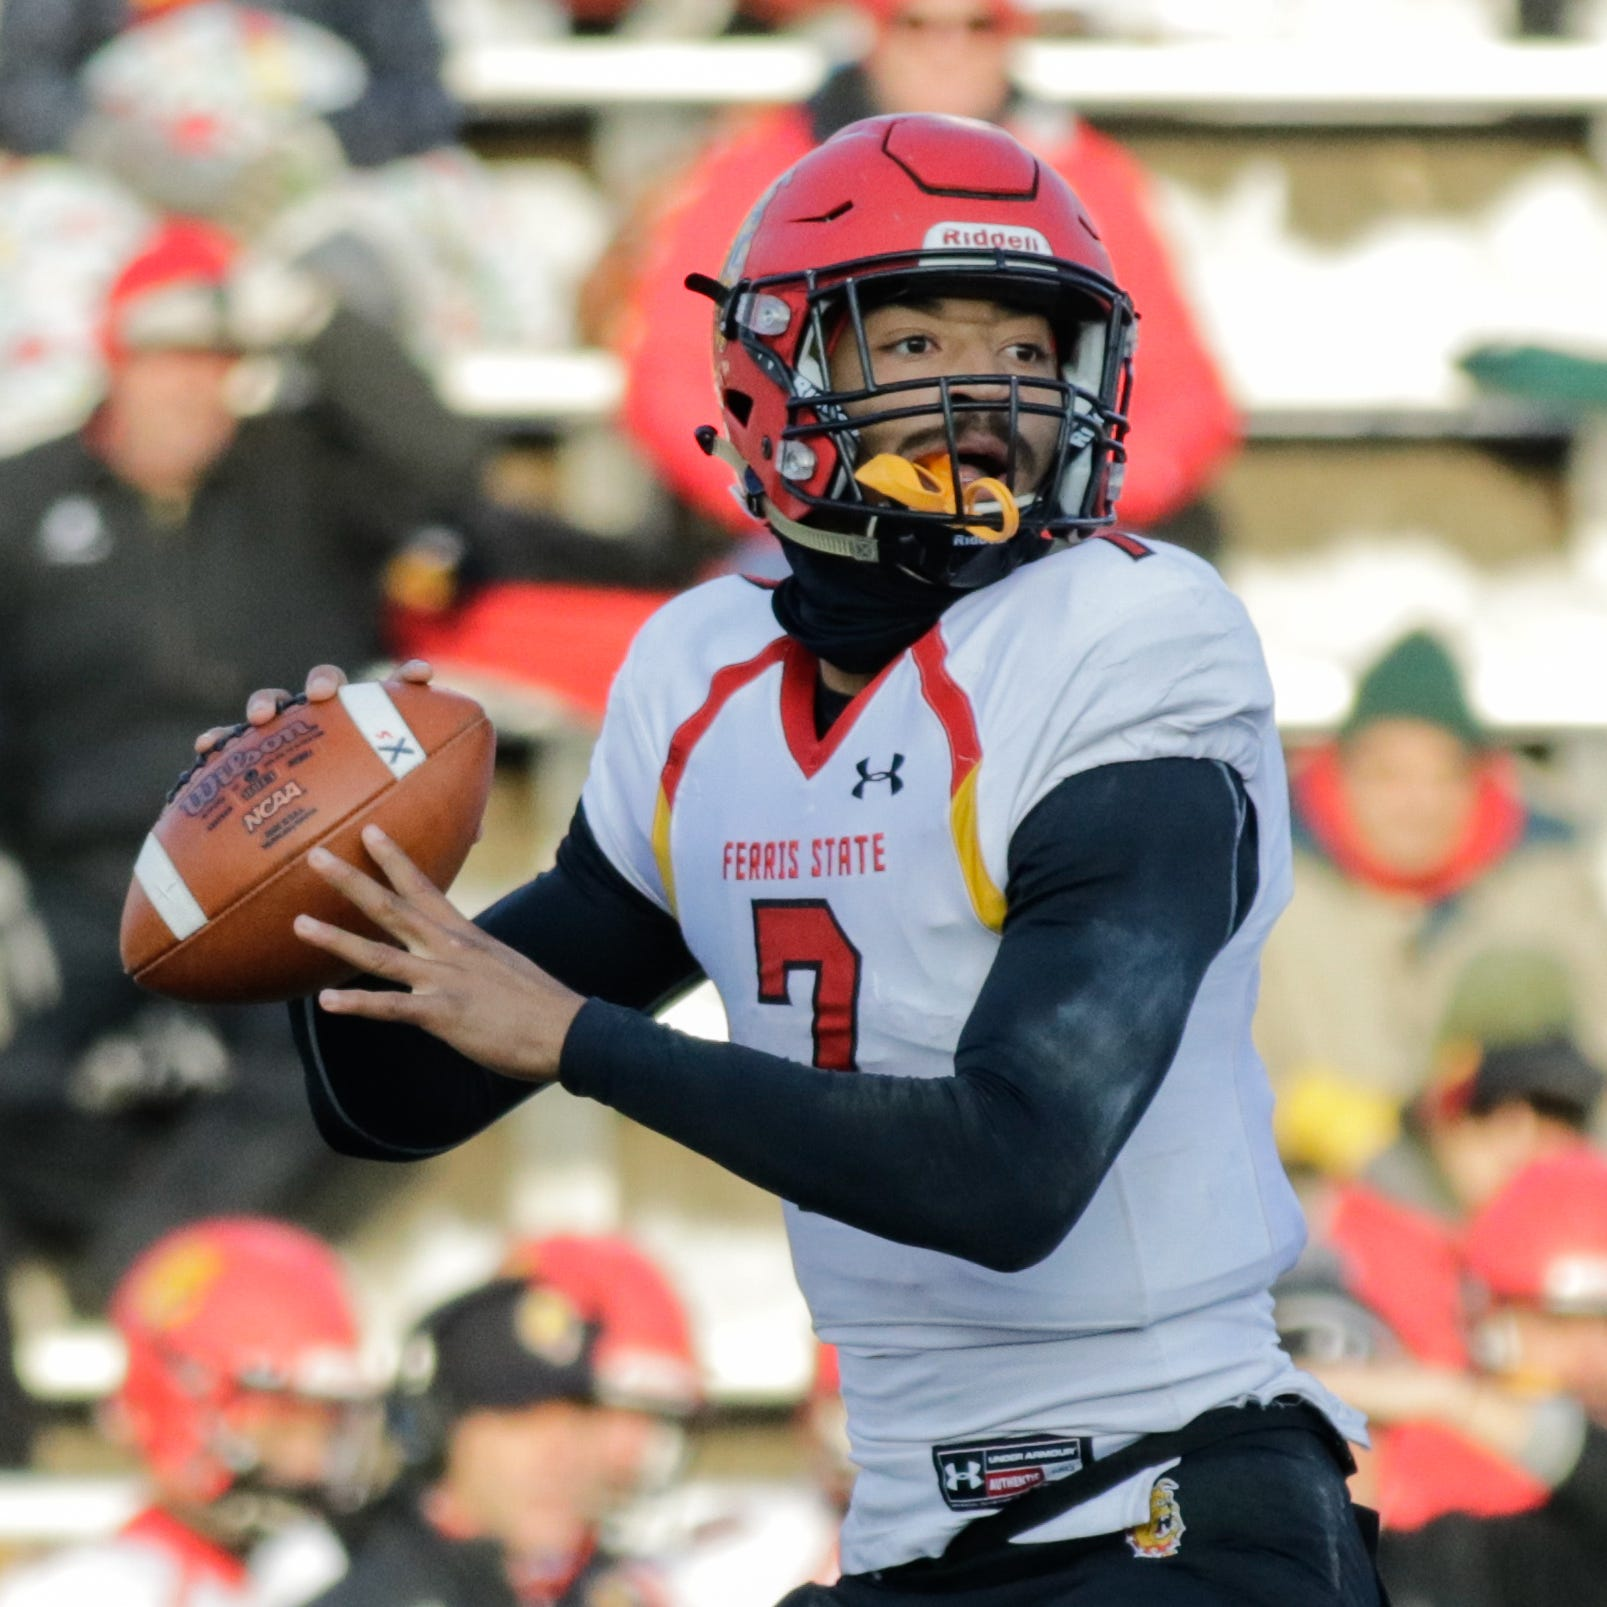 Jayru Campbell makes most of second chance, fuels Ferris State's title run